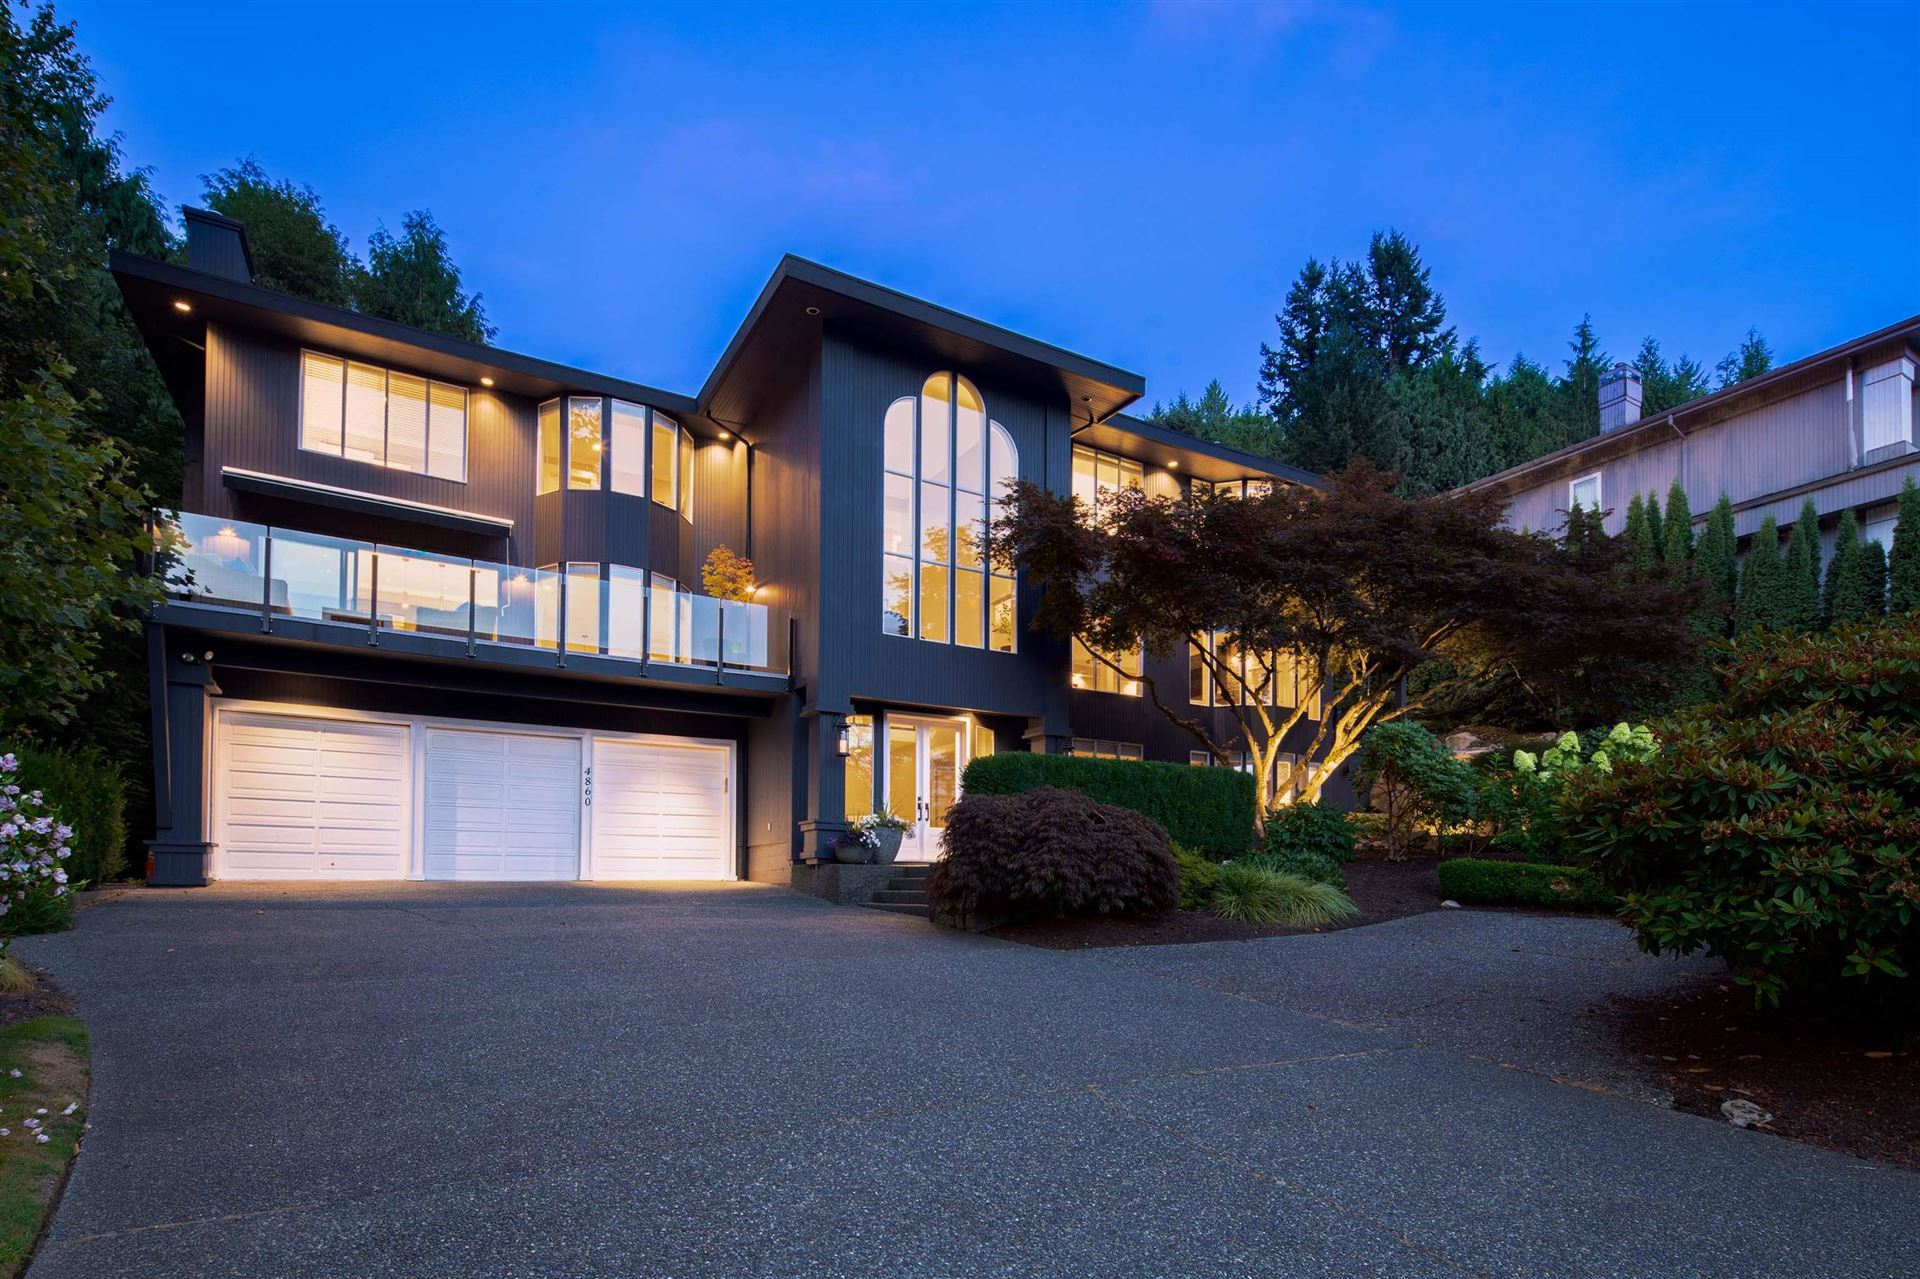 Photo of 4860 NORTHWOOD DRIVE, West Vancouver, BC V7S 3C6 (MLS # R2617676)